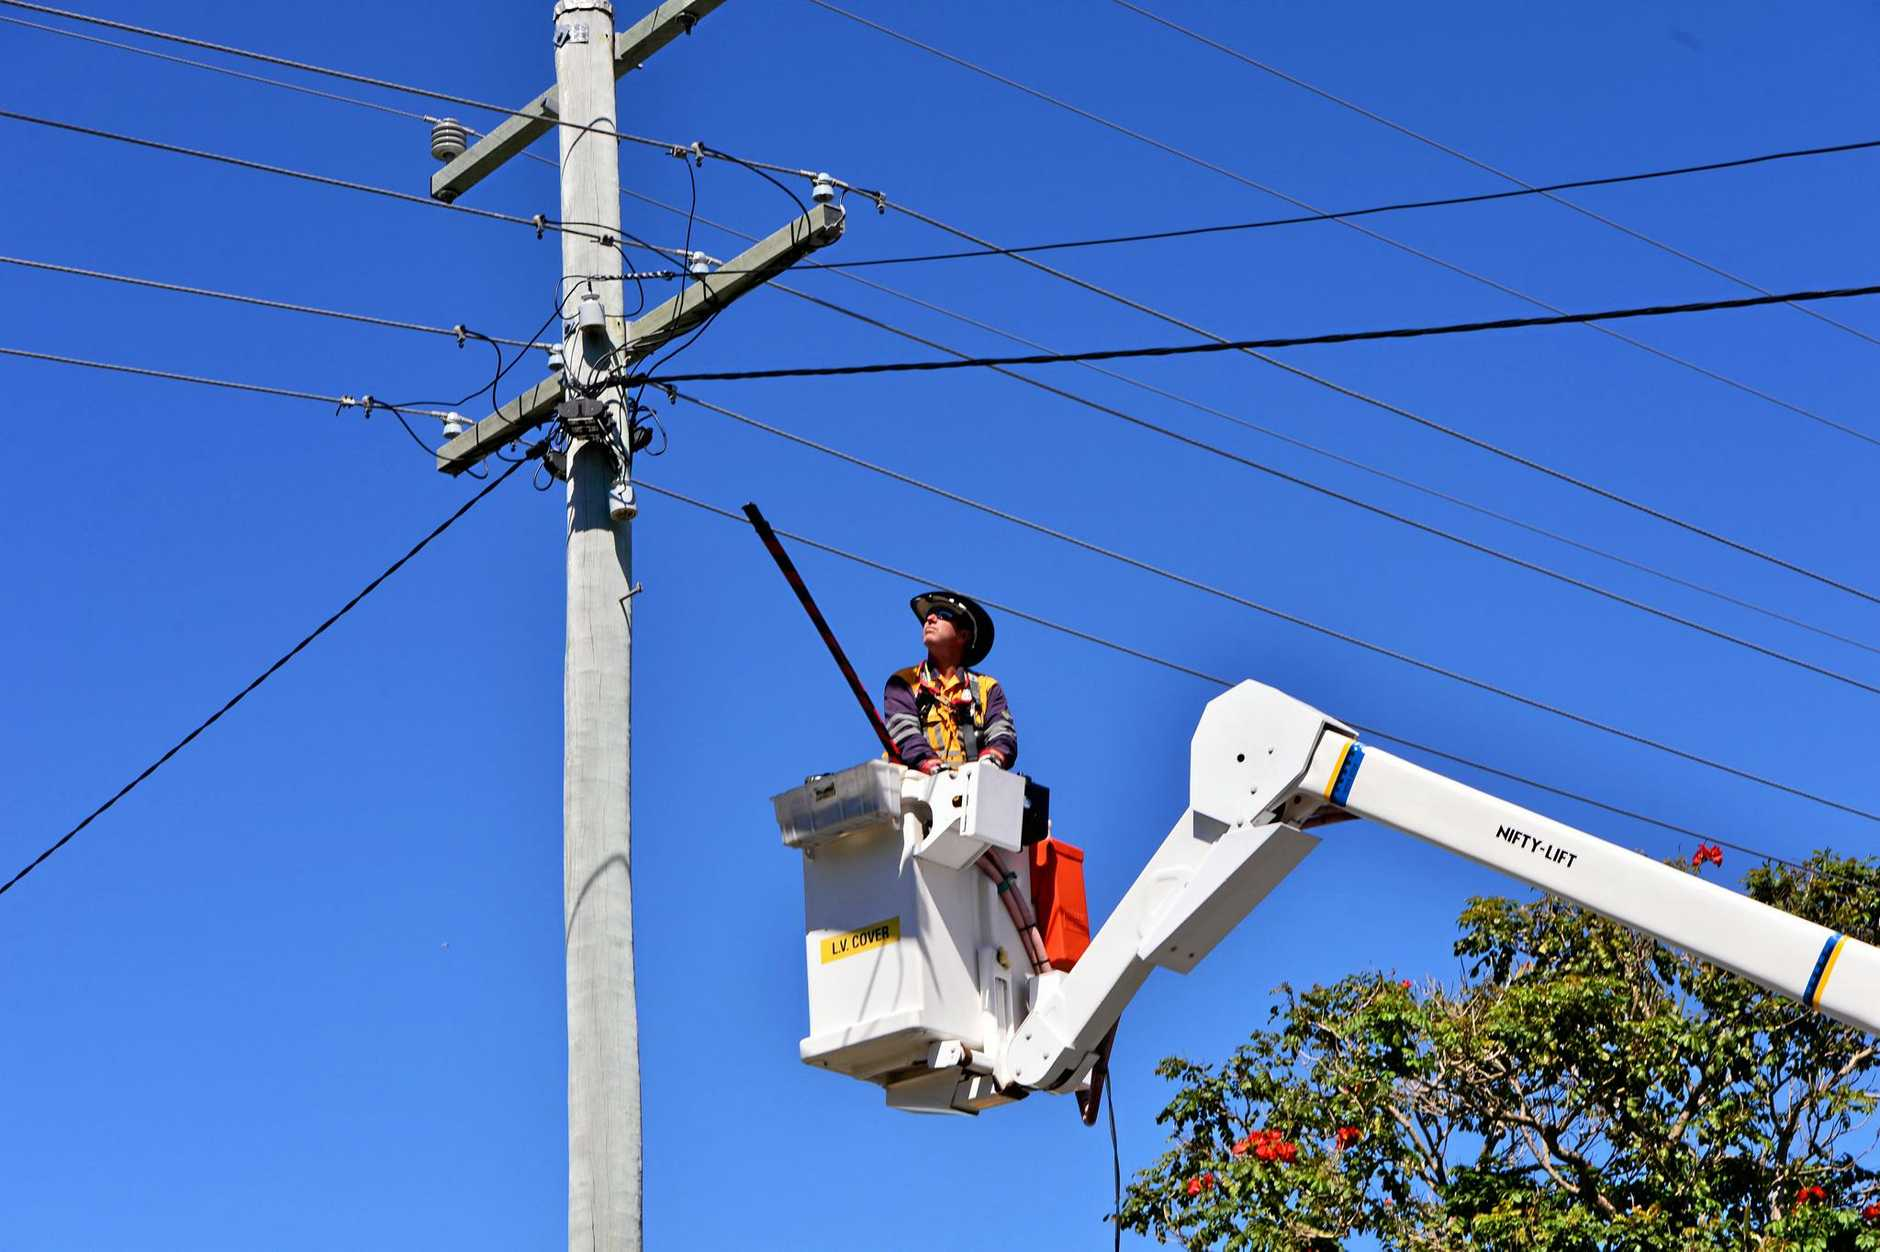 Energex is planning power outages for parts of Ipswich.